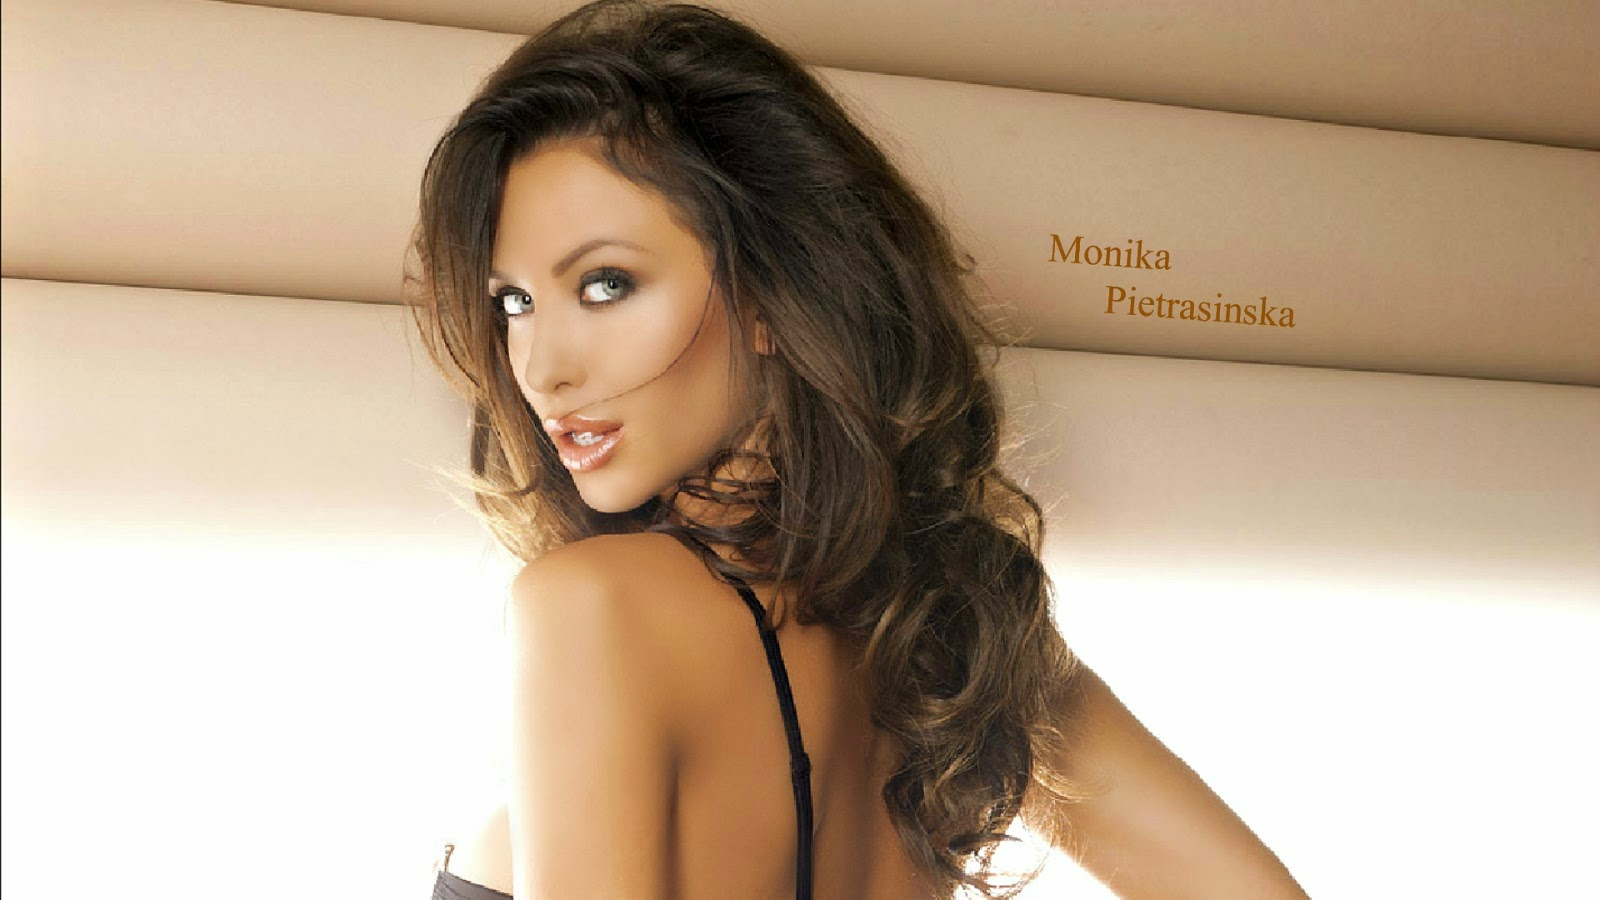 Monika Pietrasinska Wallpapers Free Download